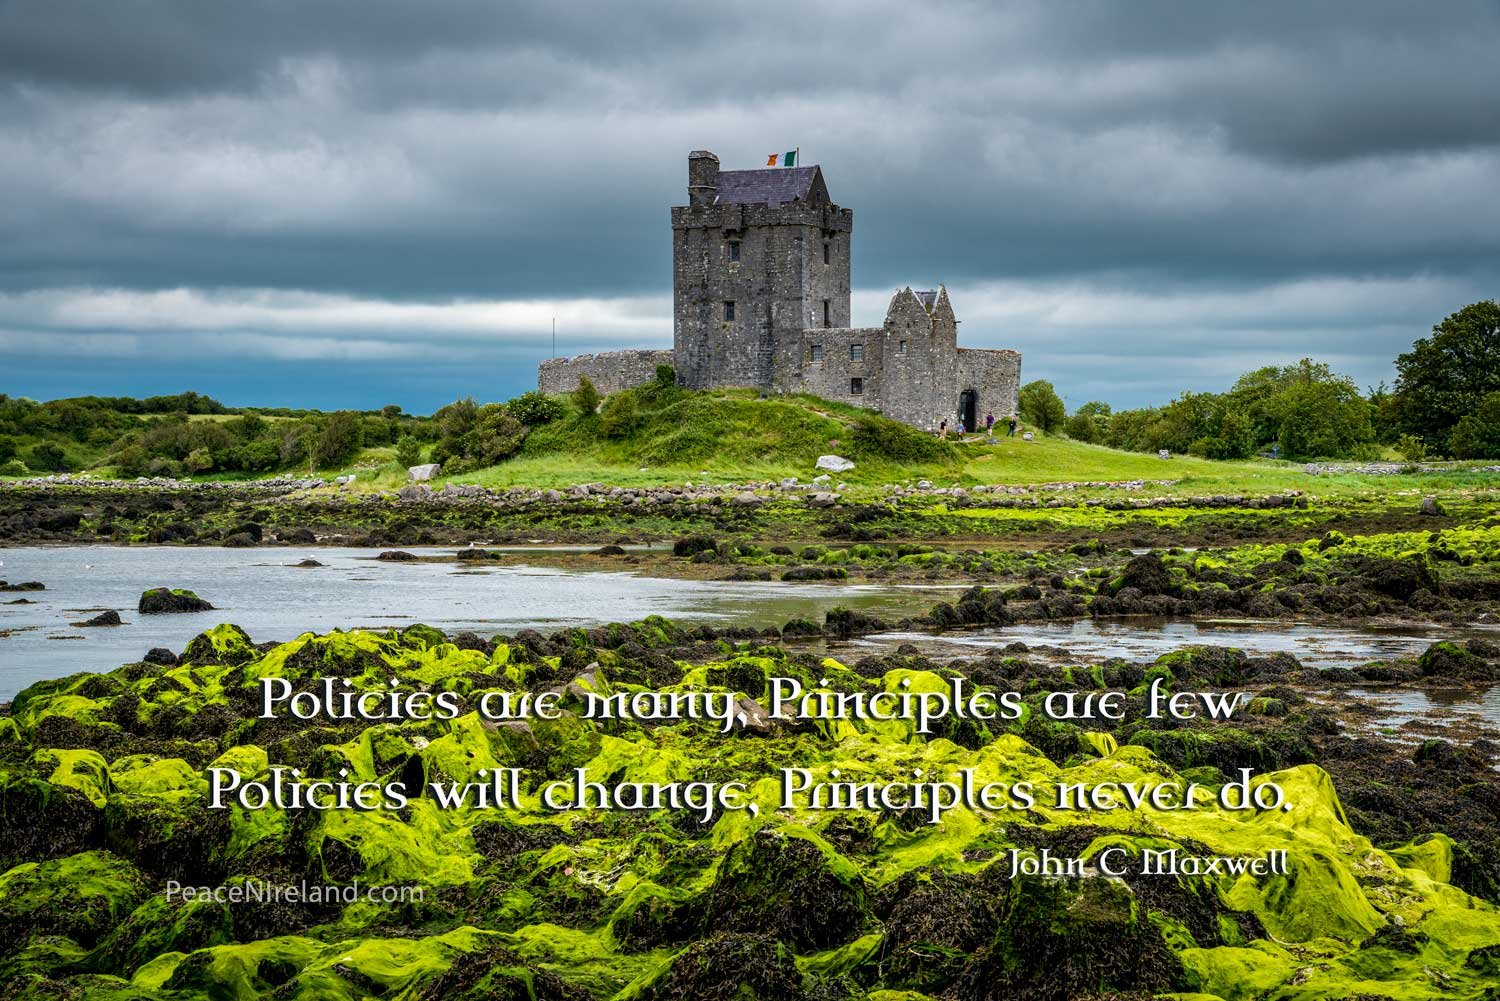 Dunguaire Castle, Galway Bay, County Galway